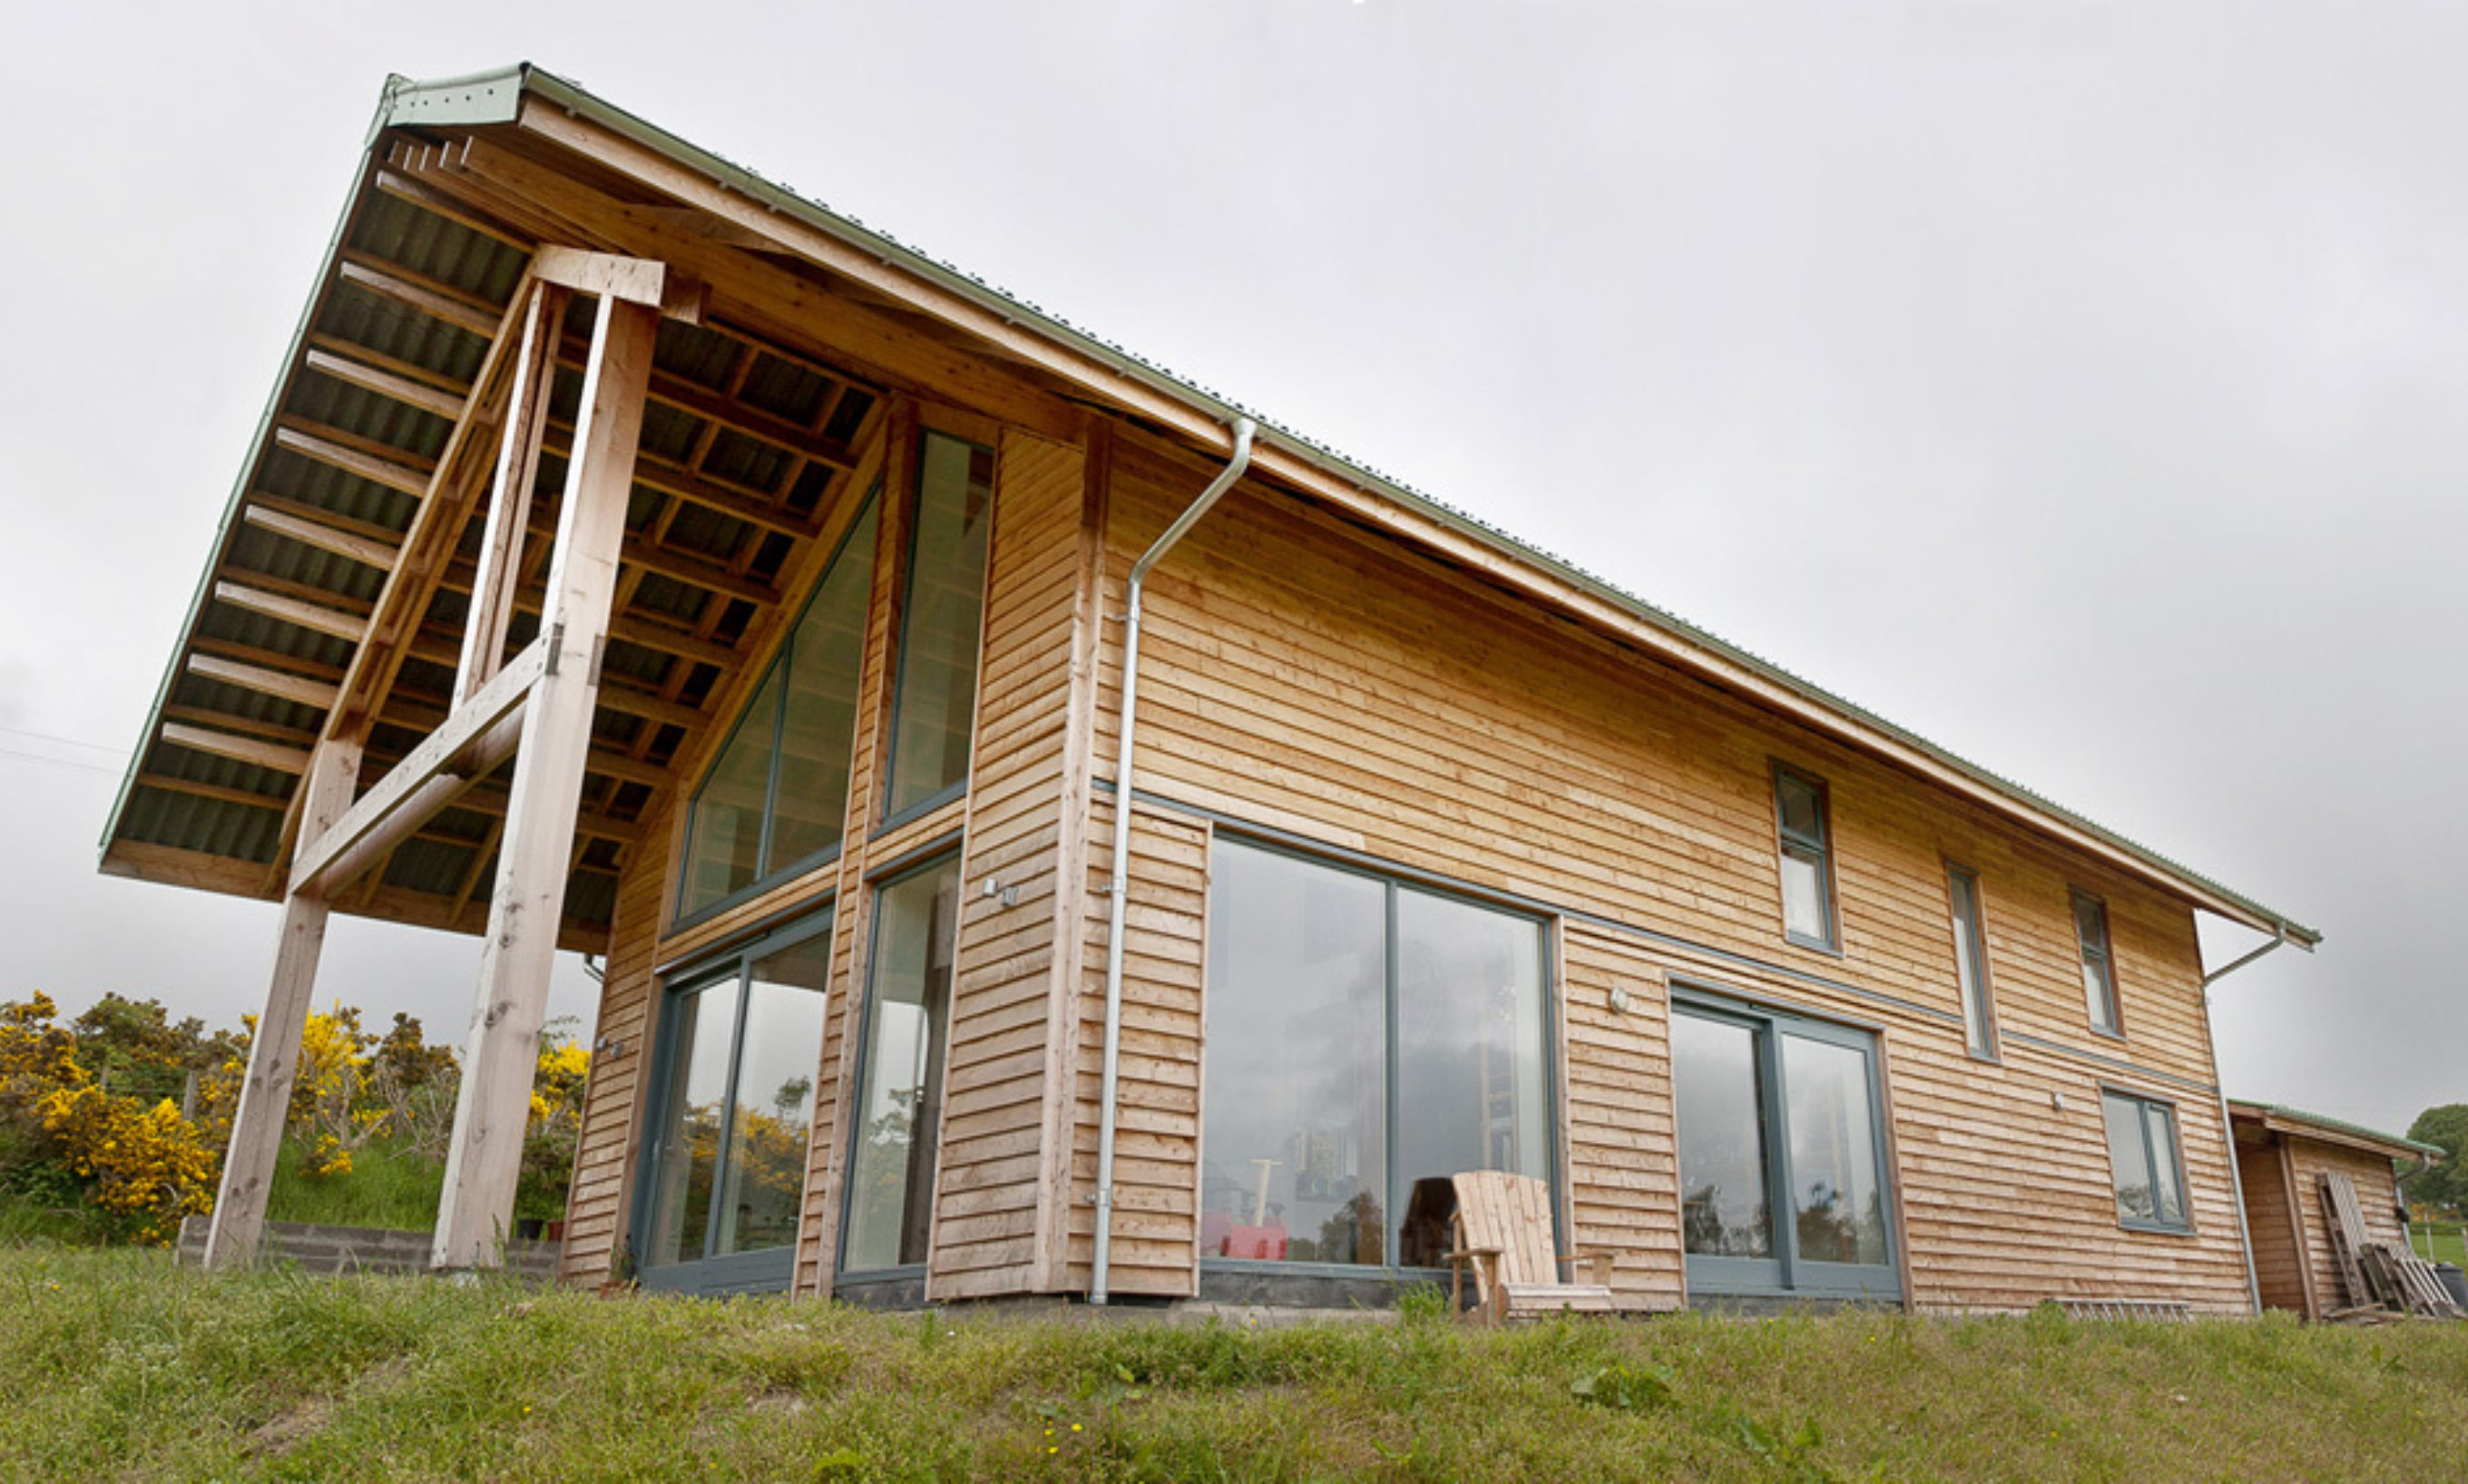 The Larch House